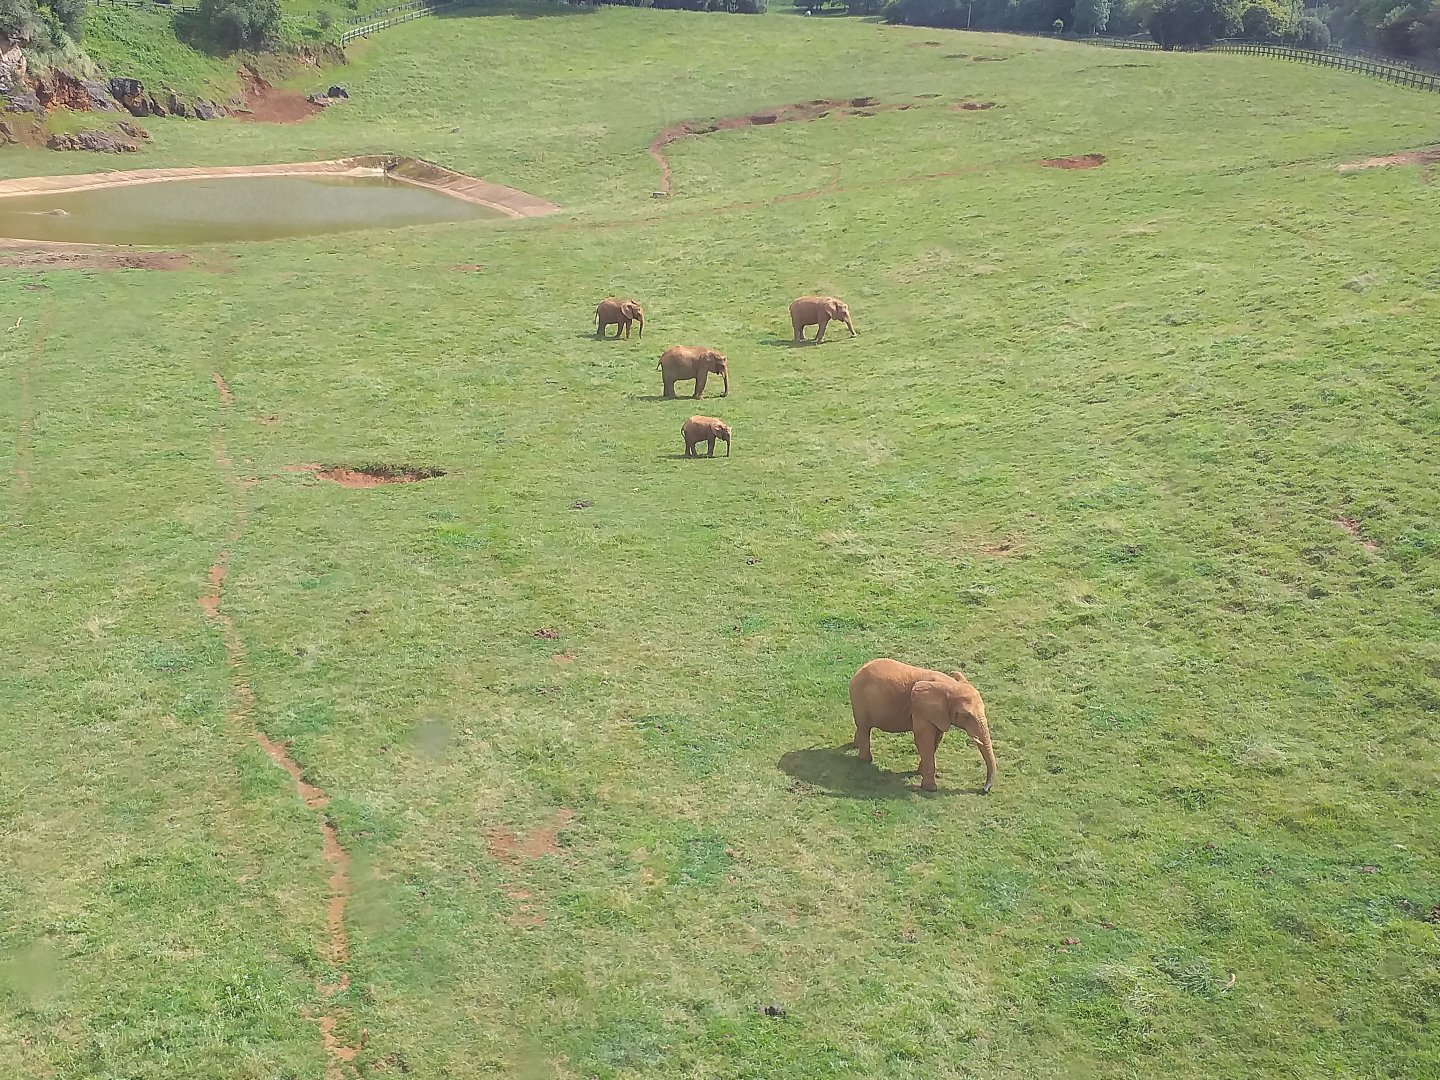 https://www.zoochat.com/community/media/african-elephants-from-the-cable-car-cabarceno-2019.455760/full?d=1566287149